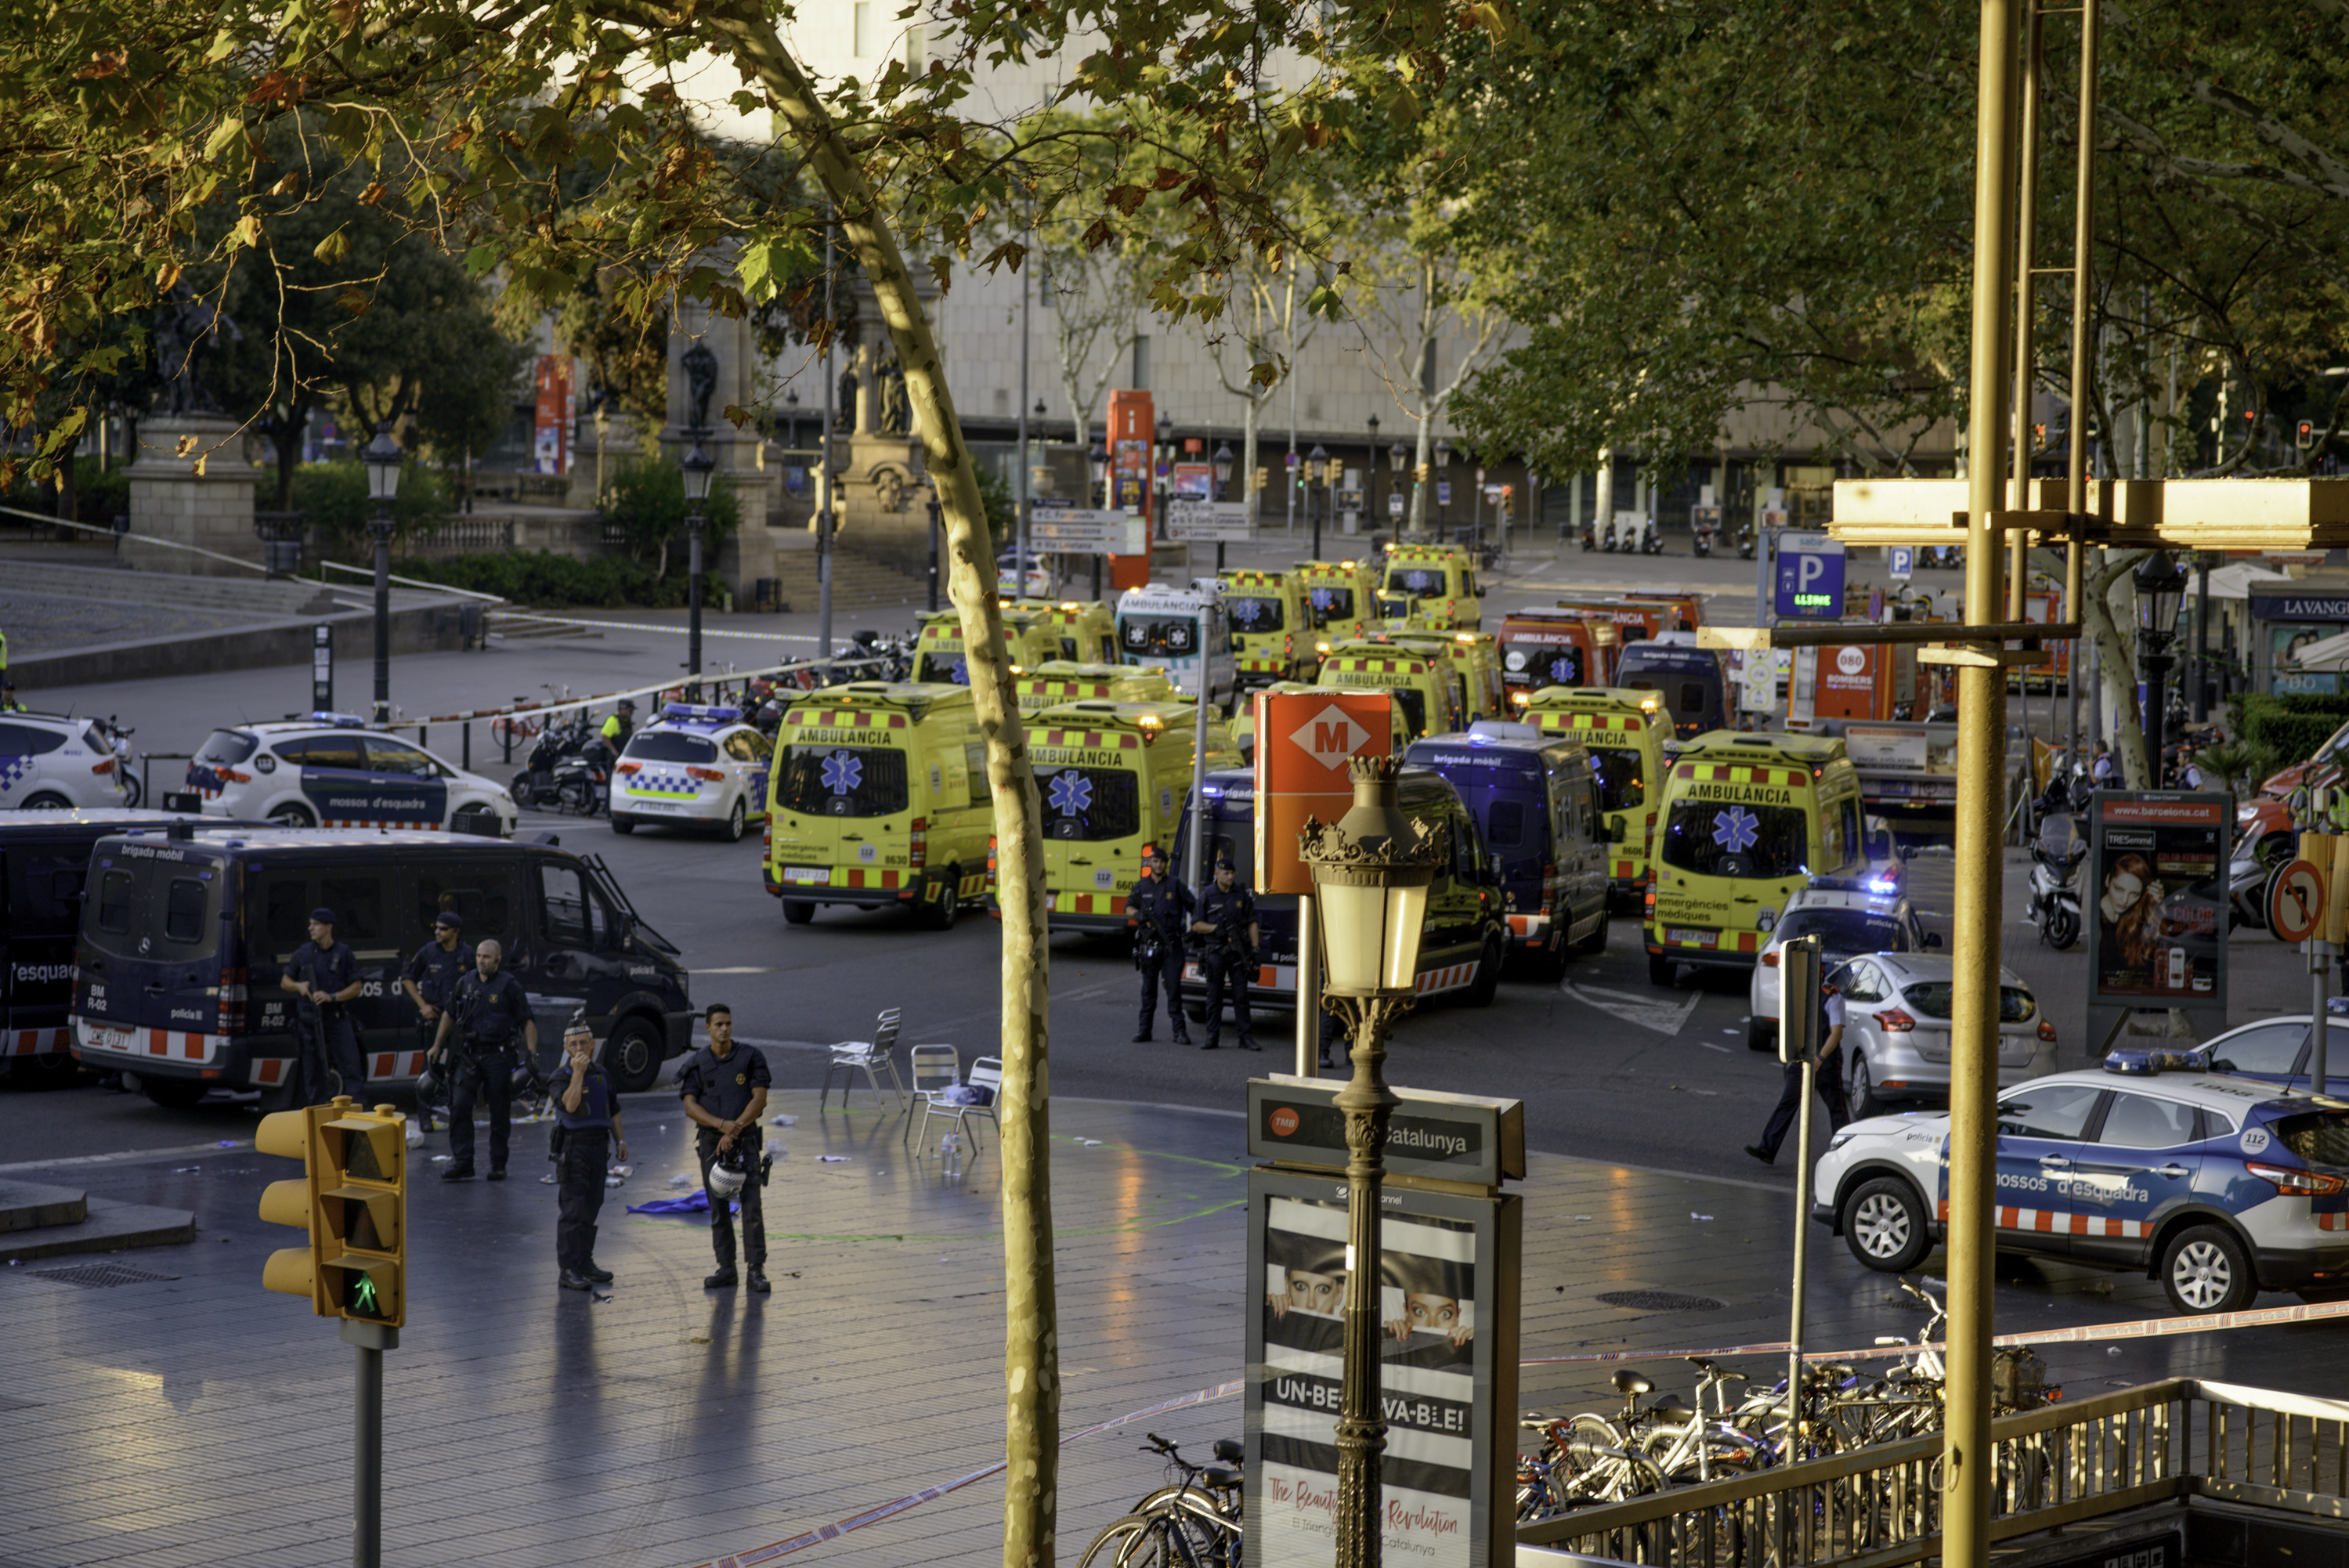 File:On 17 08 2017, day of Barcelona Terrorist Attack